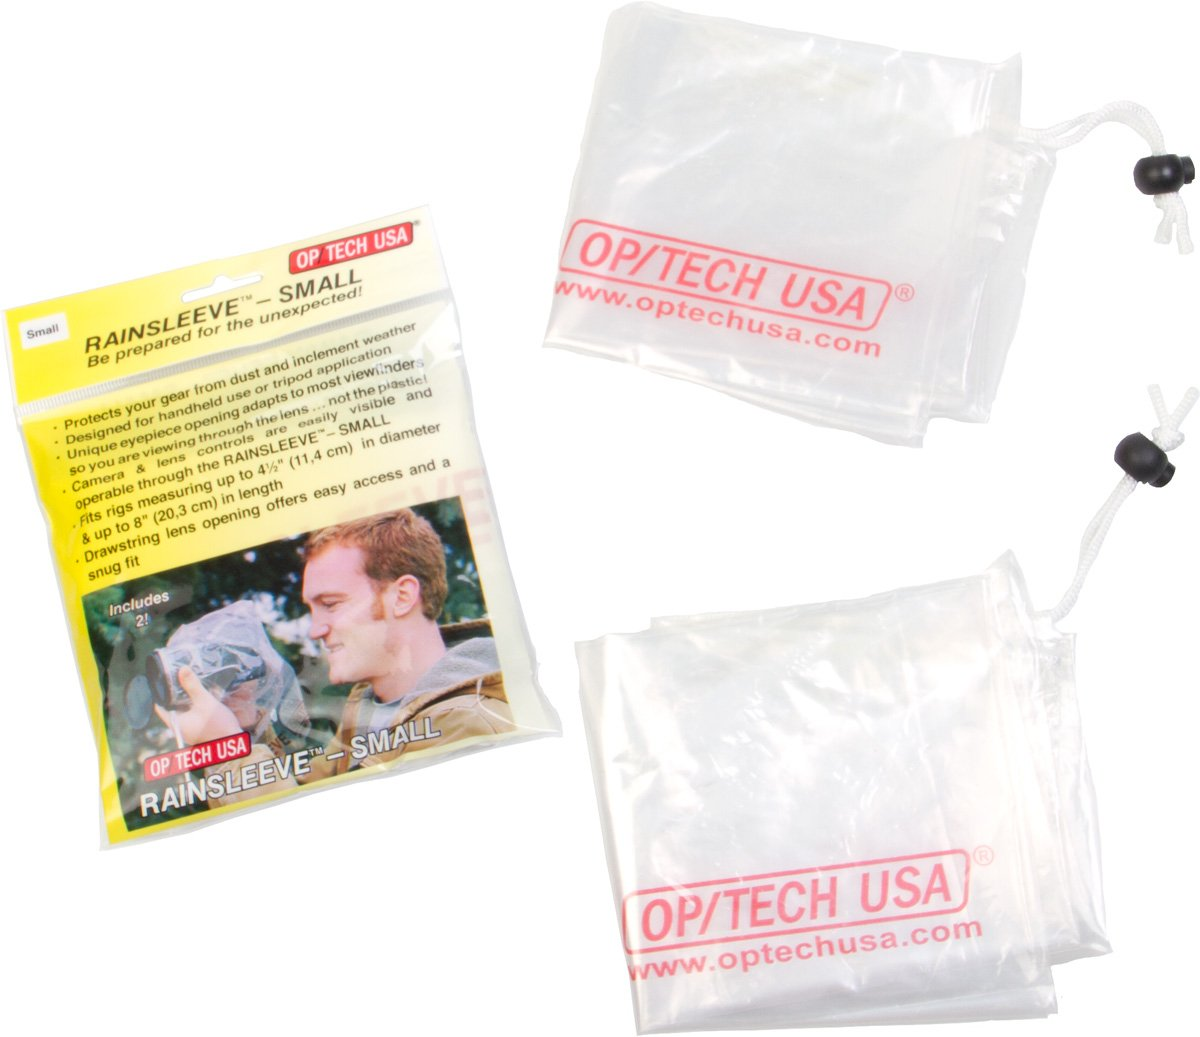 OP/TECH USA RainSleeve - Small, Counter Display (20 Packs of 2) by OP/TECH USA